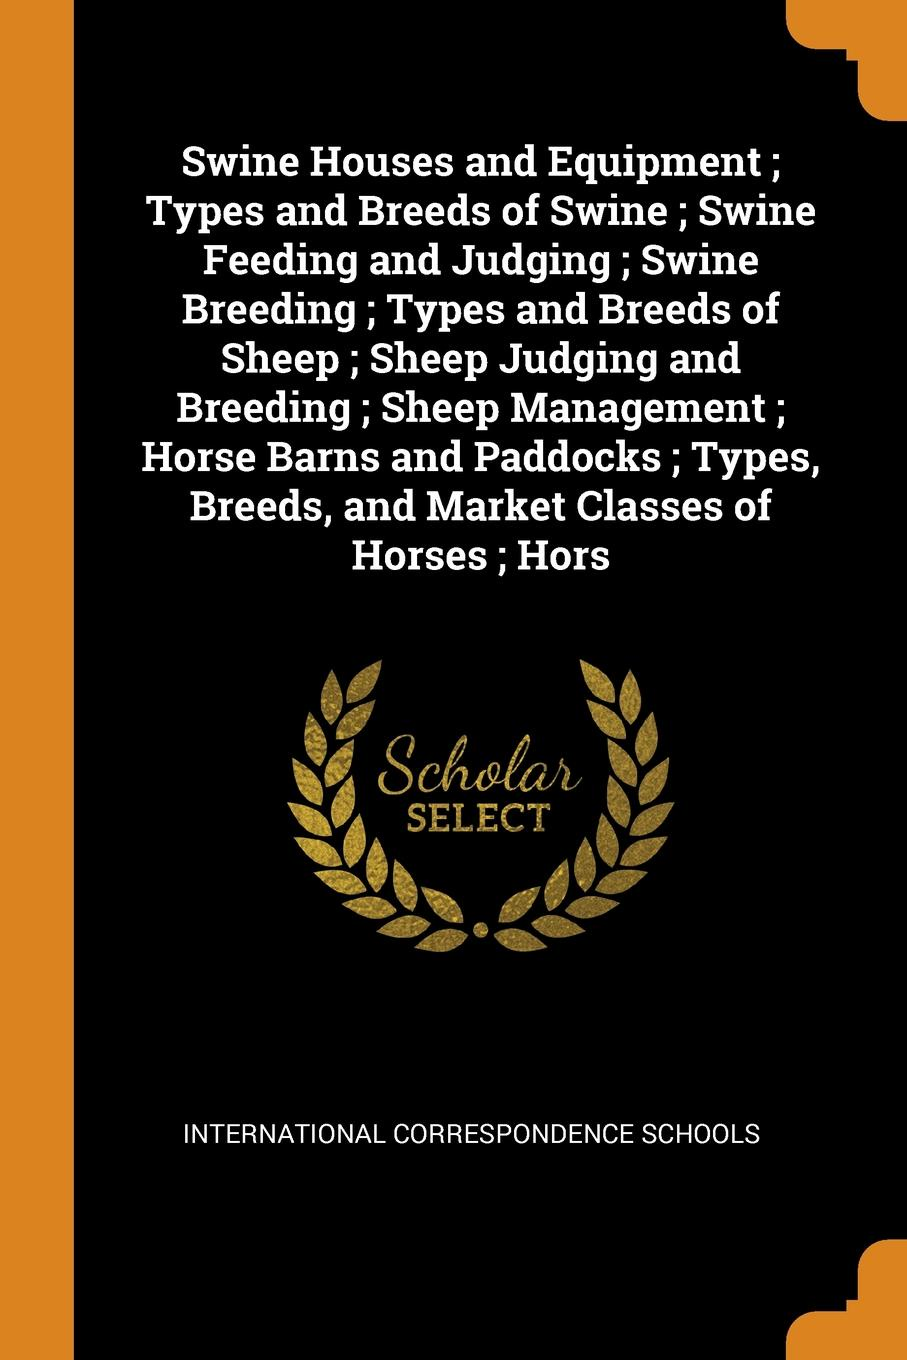 Swine Houses and Equipment ; Types and Breeds of Swine ; Swine Feeding and Judging ; Swine Breeding ; Types and Breeds of Sheep ; Sheep Judging and Breeding ; Sheep Management ; Horse Barns and Paddocks ; Types, Breeds, and Market Classes of Horse... цена и фото